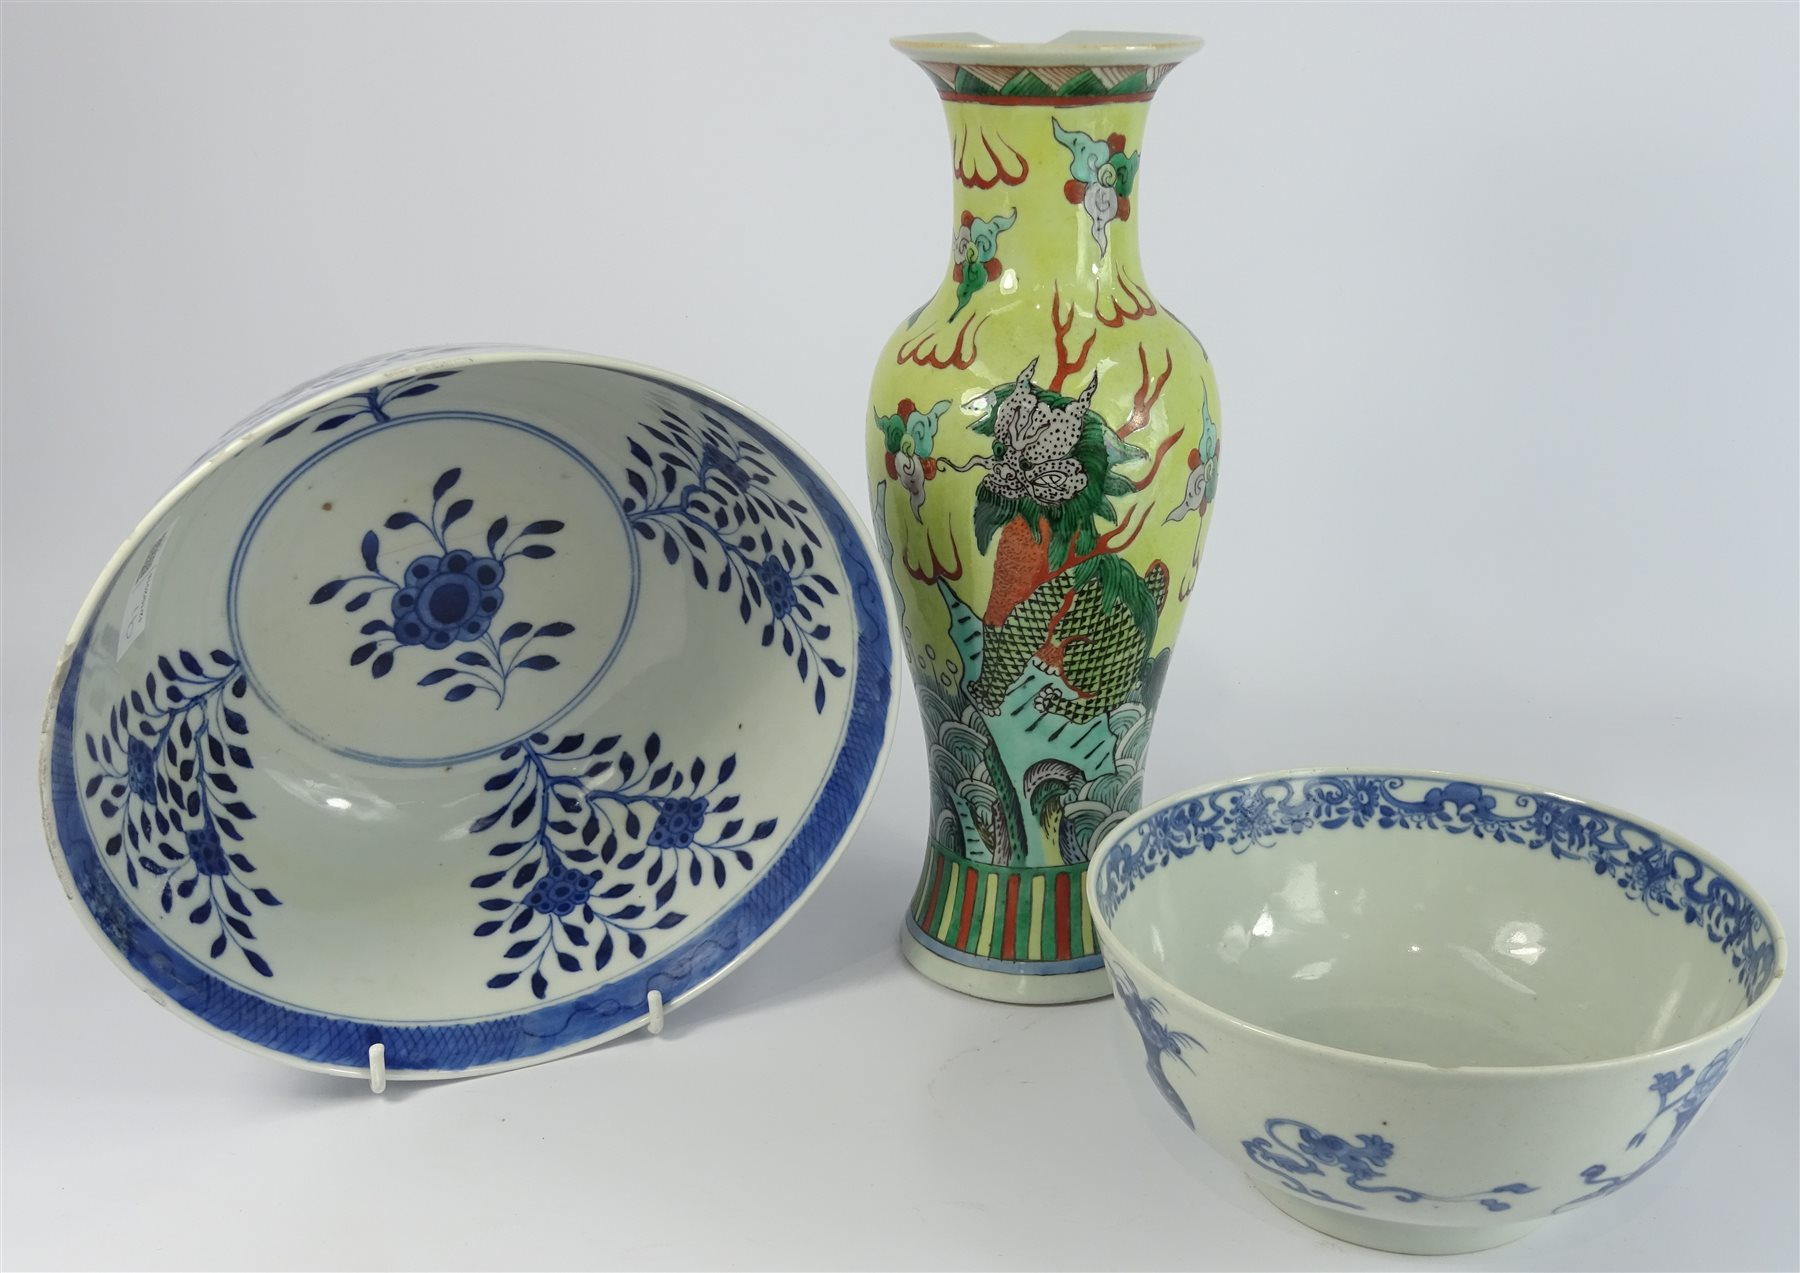 Chinese Bowl Decorated With Panels Of Flowers In Blue And White And